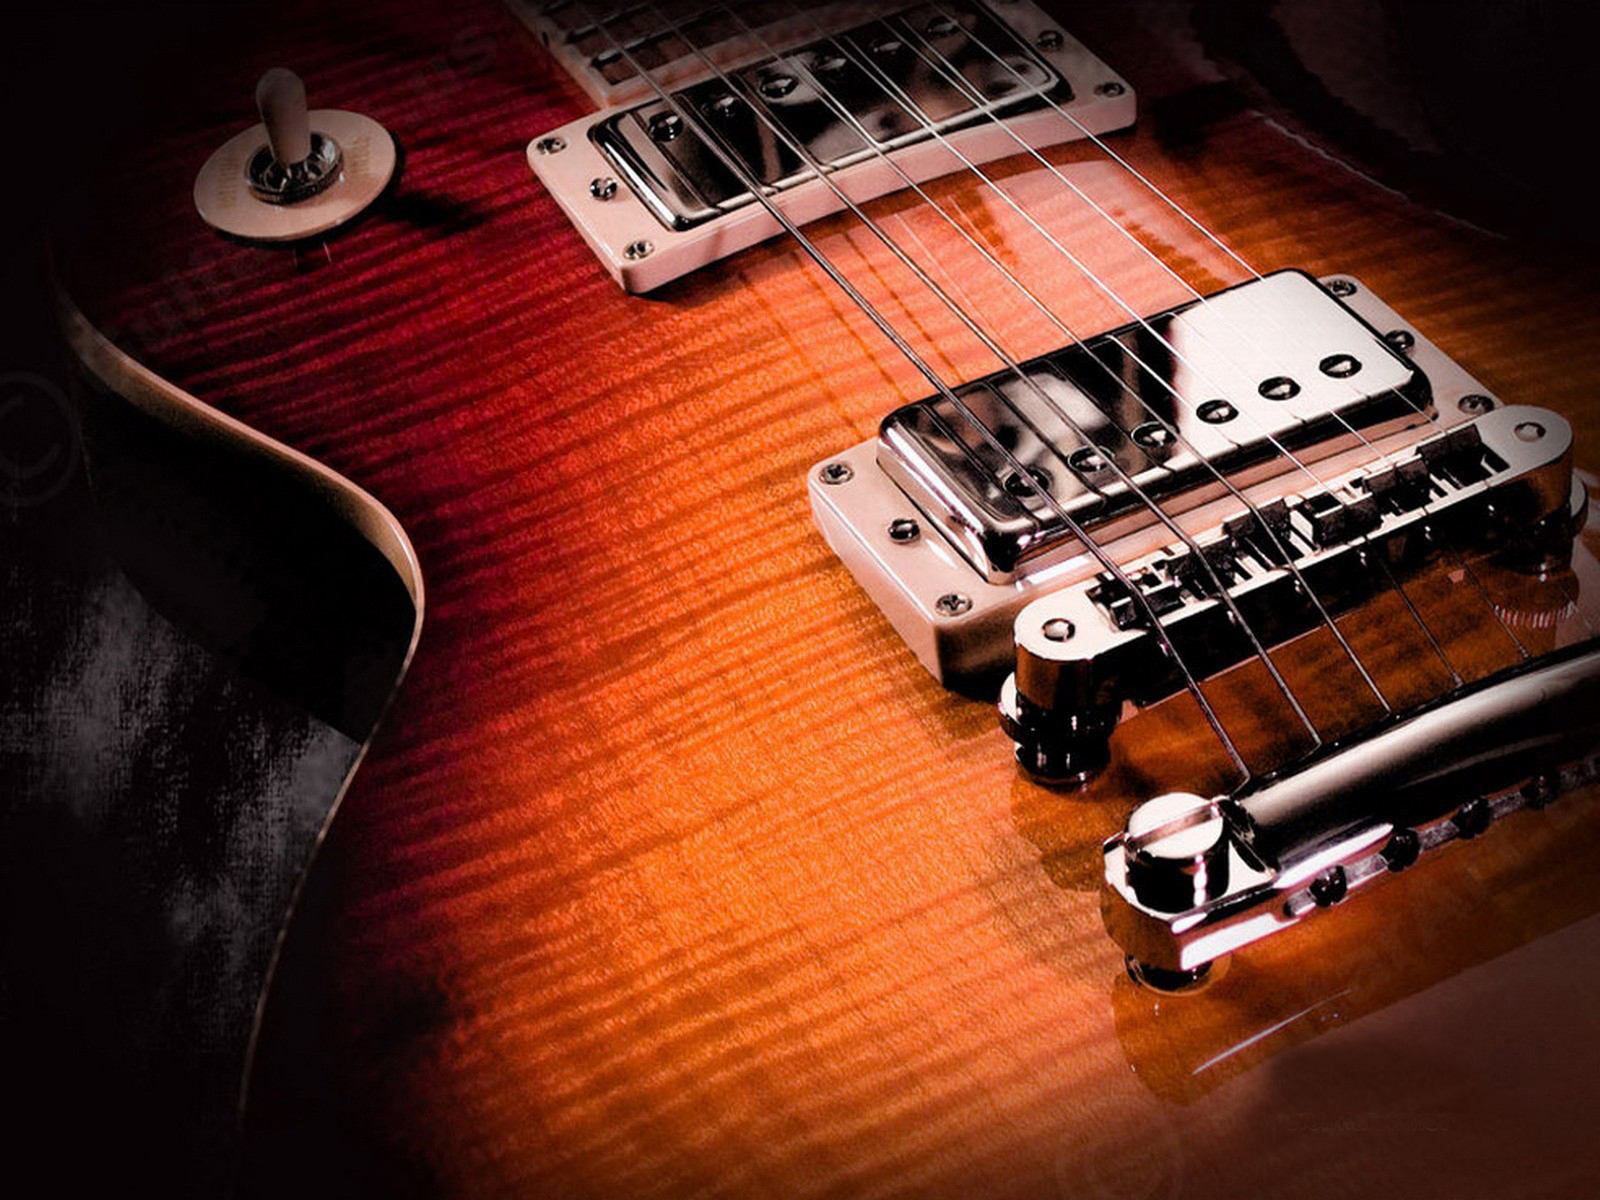 guitar musical instruments new hd images free download | wallpapers